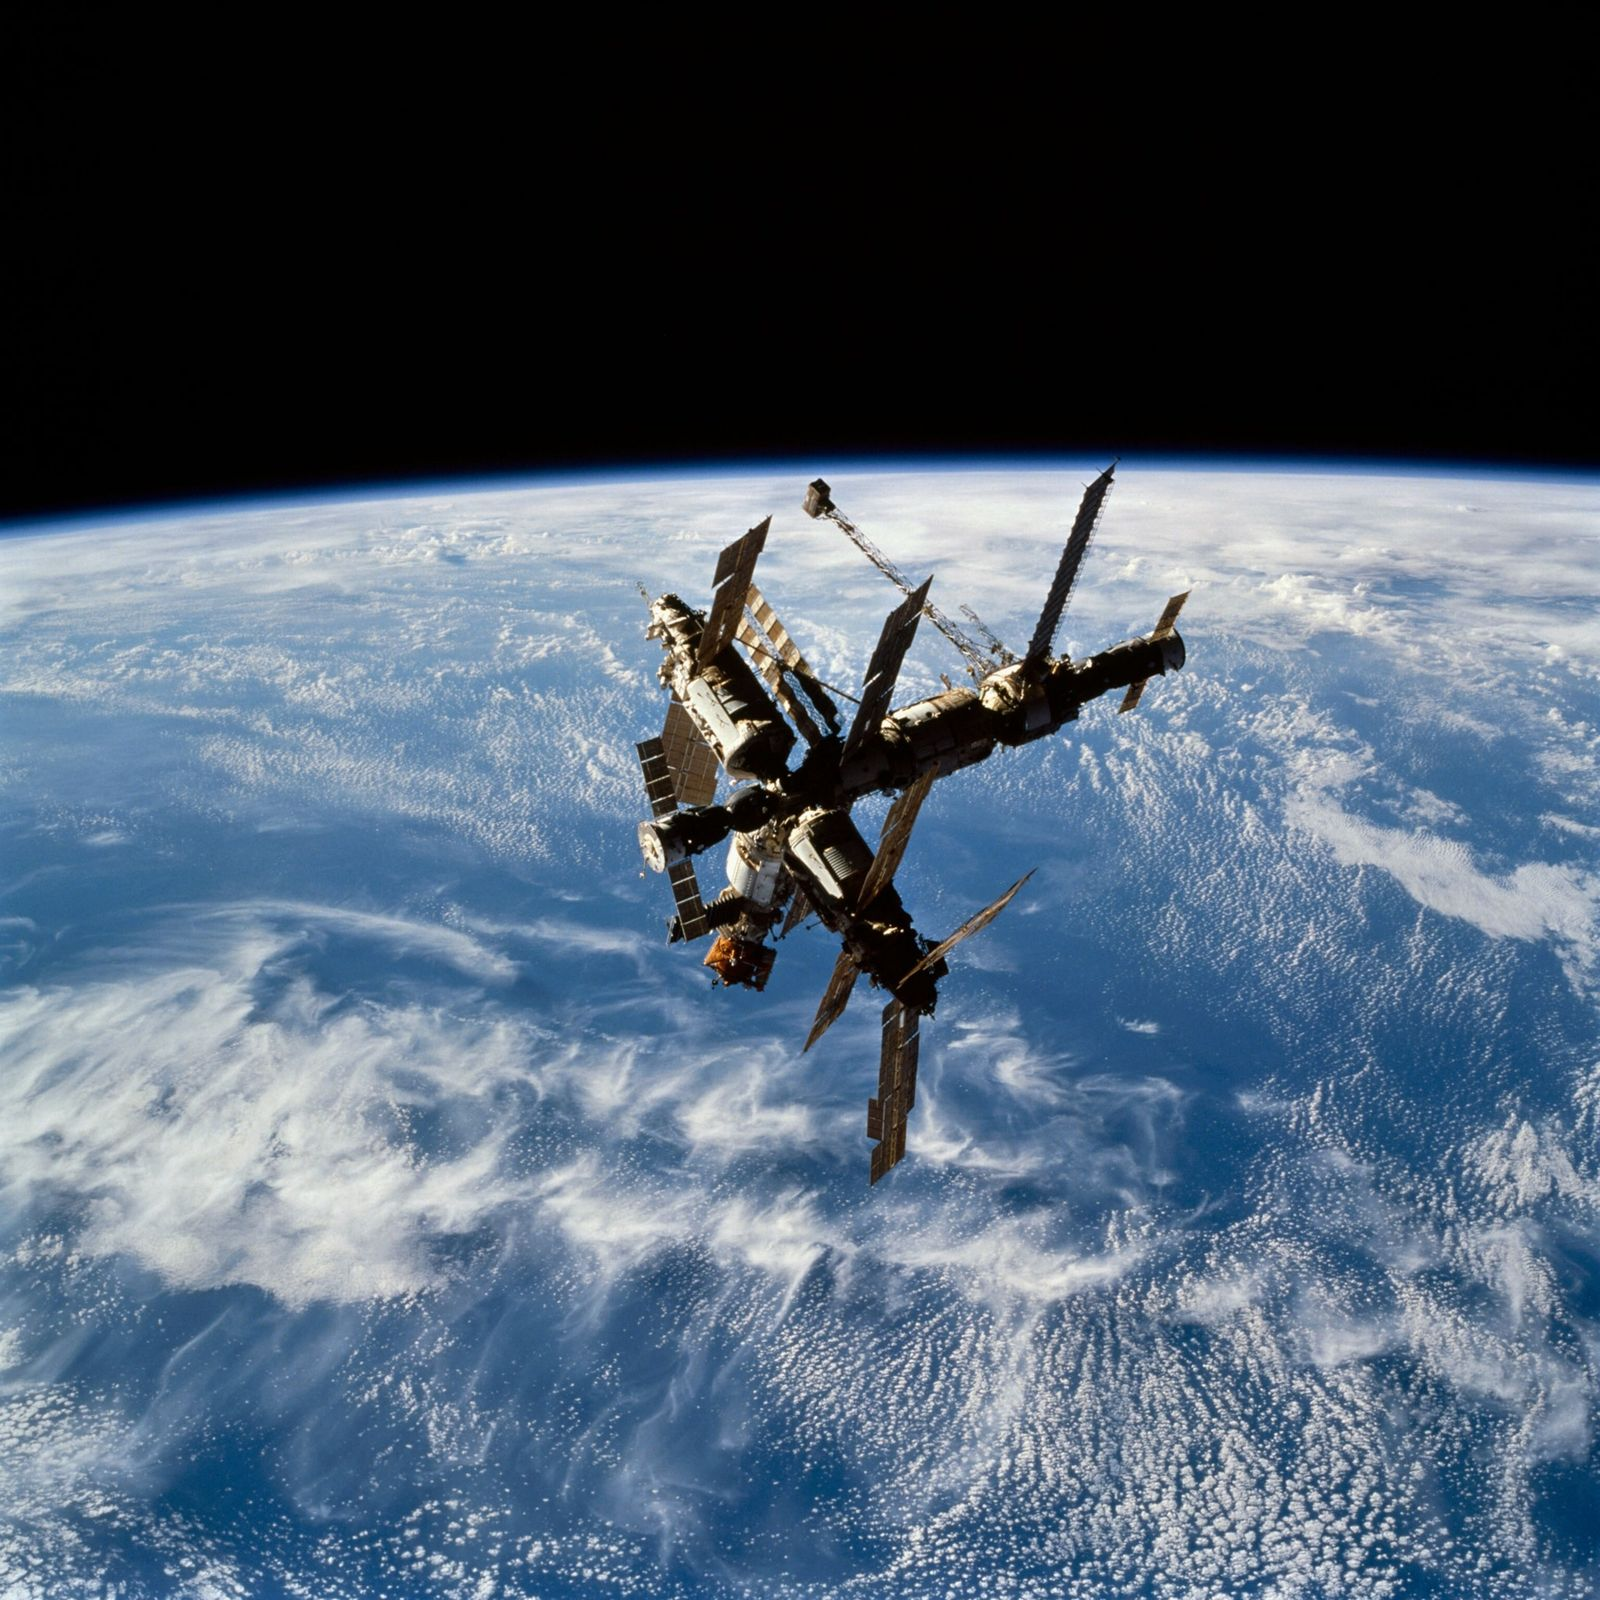 The dramatic rise and fall of the Russian space station